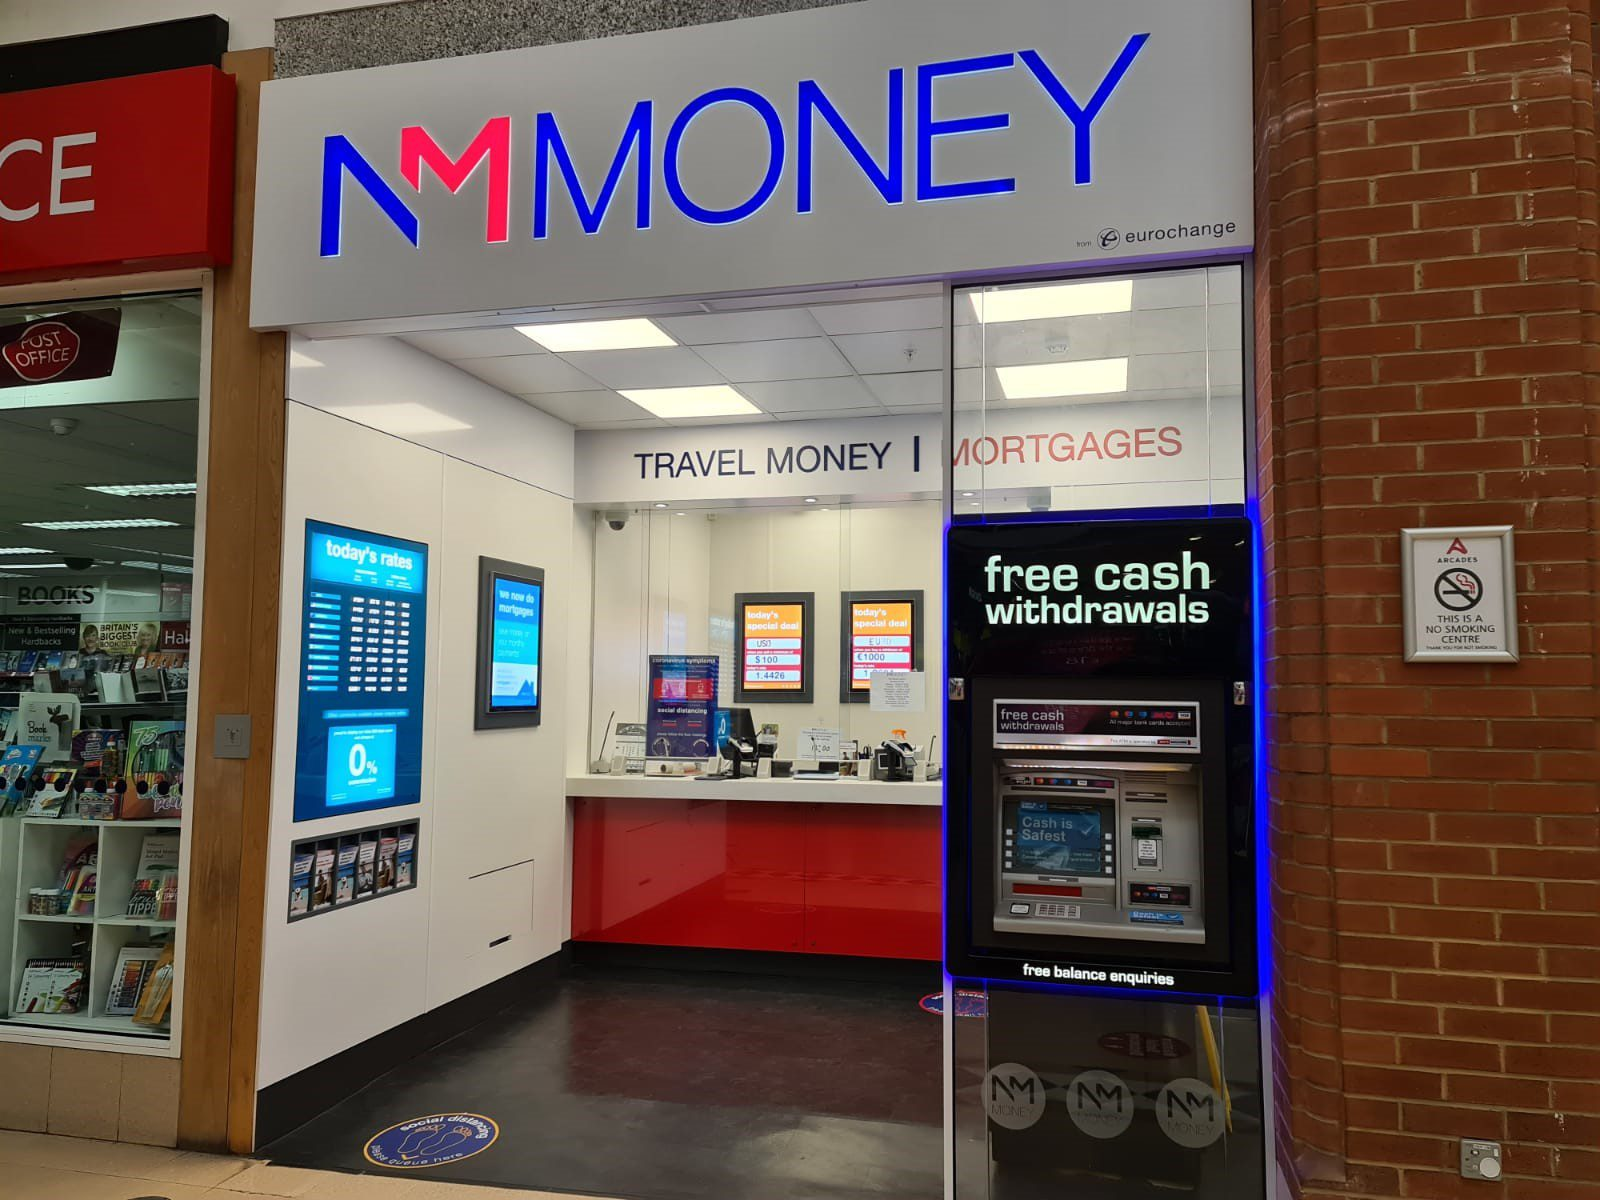 NM Money Ashton under Lyne (formerly eurochange)